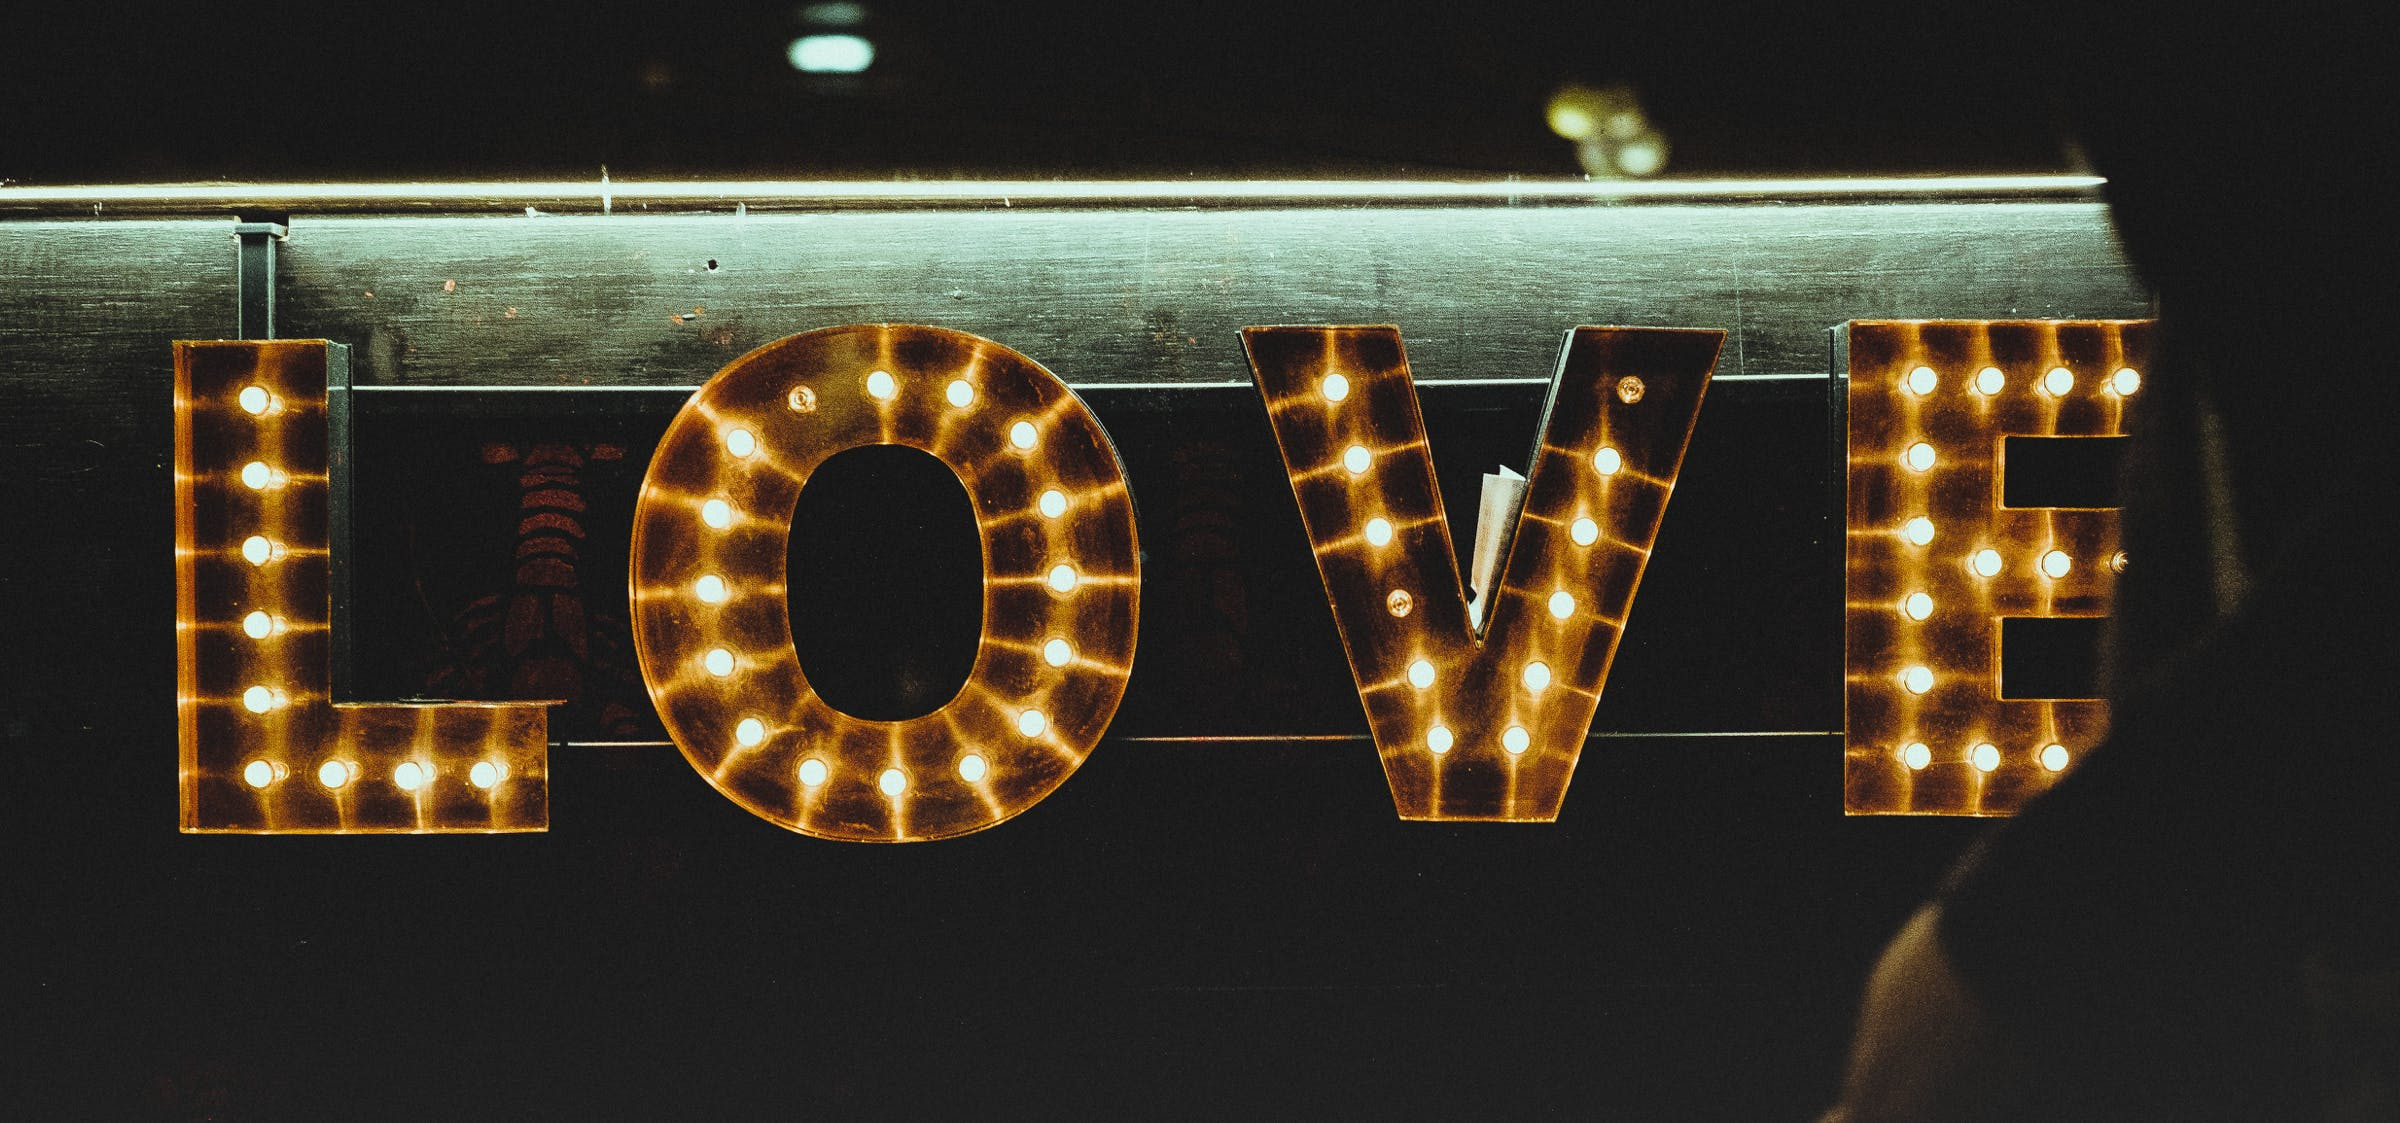 Love light sign